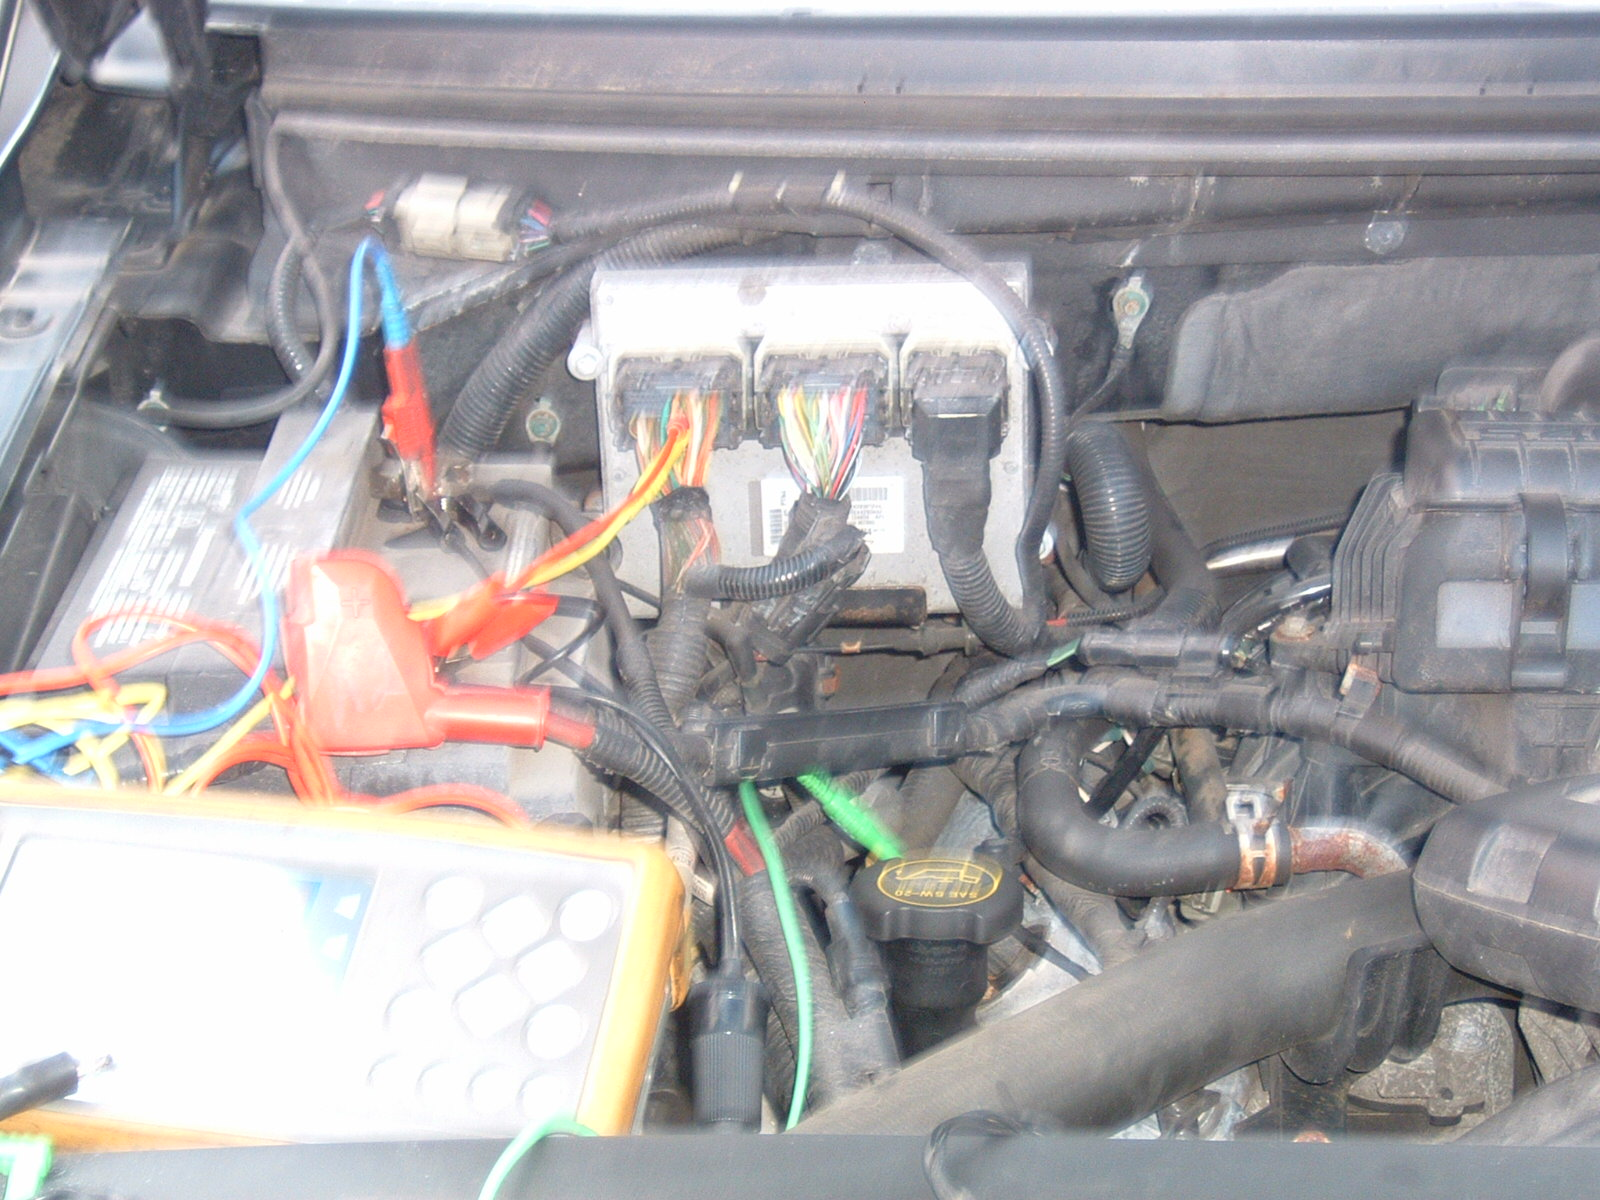 2004 Ford F 150 Camshaft Sensor Wiring Diagram Not Lossing 2008 Trailer Jwr Automotive Diagnostics 5 4 Liter Rh Jwrautomotivediagnostics Blogspot Com 2000 F150 Door